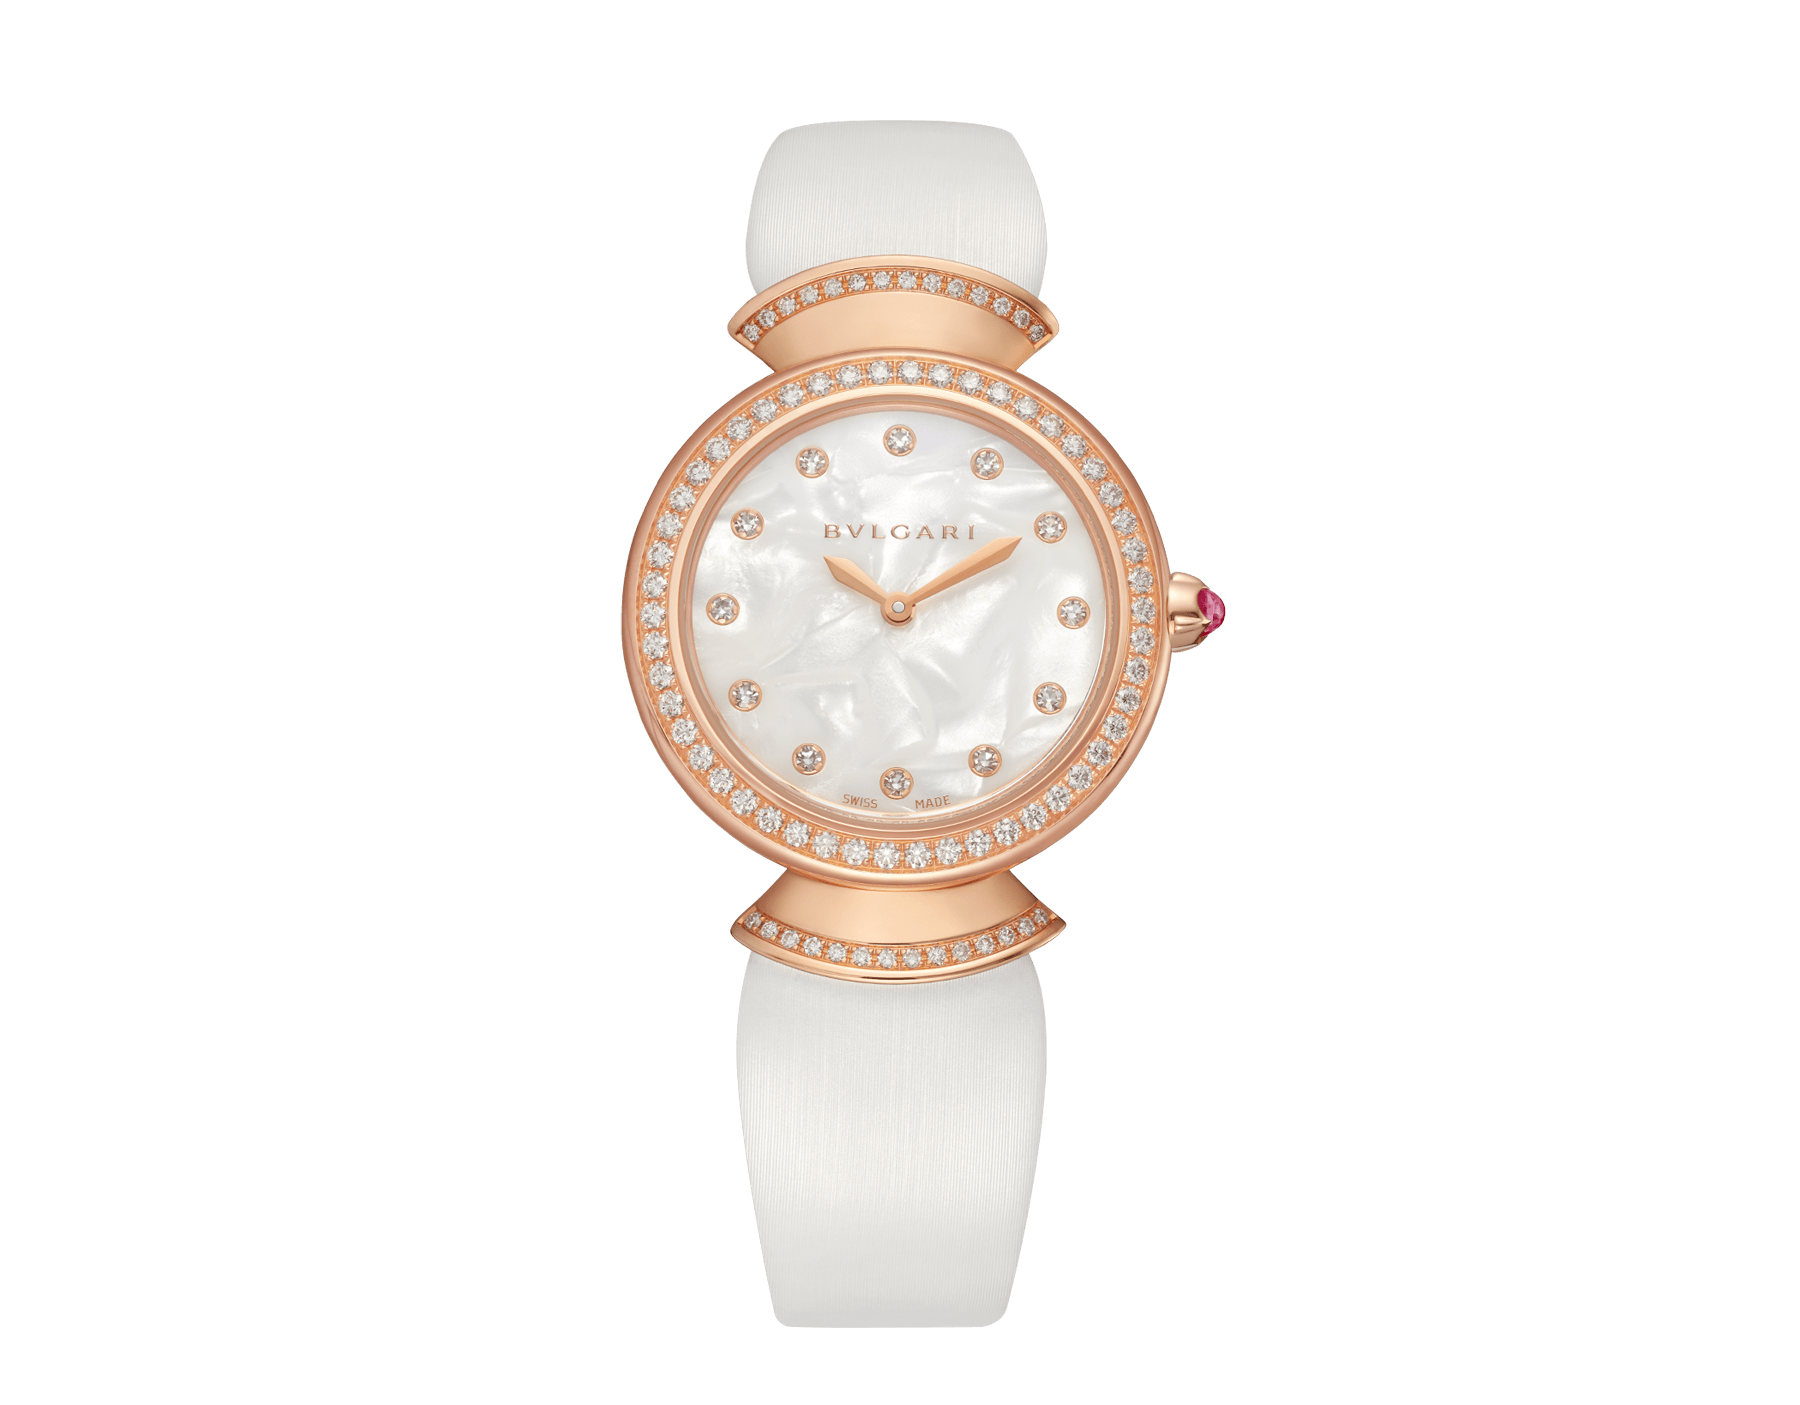 DIVAS' DREAM watch with 18 kt rose gold case set with brilliant-cut diamonds, natural acetate dial, diamond indexes and white satin bracelet 102433 image 1